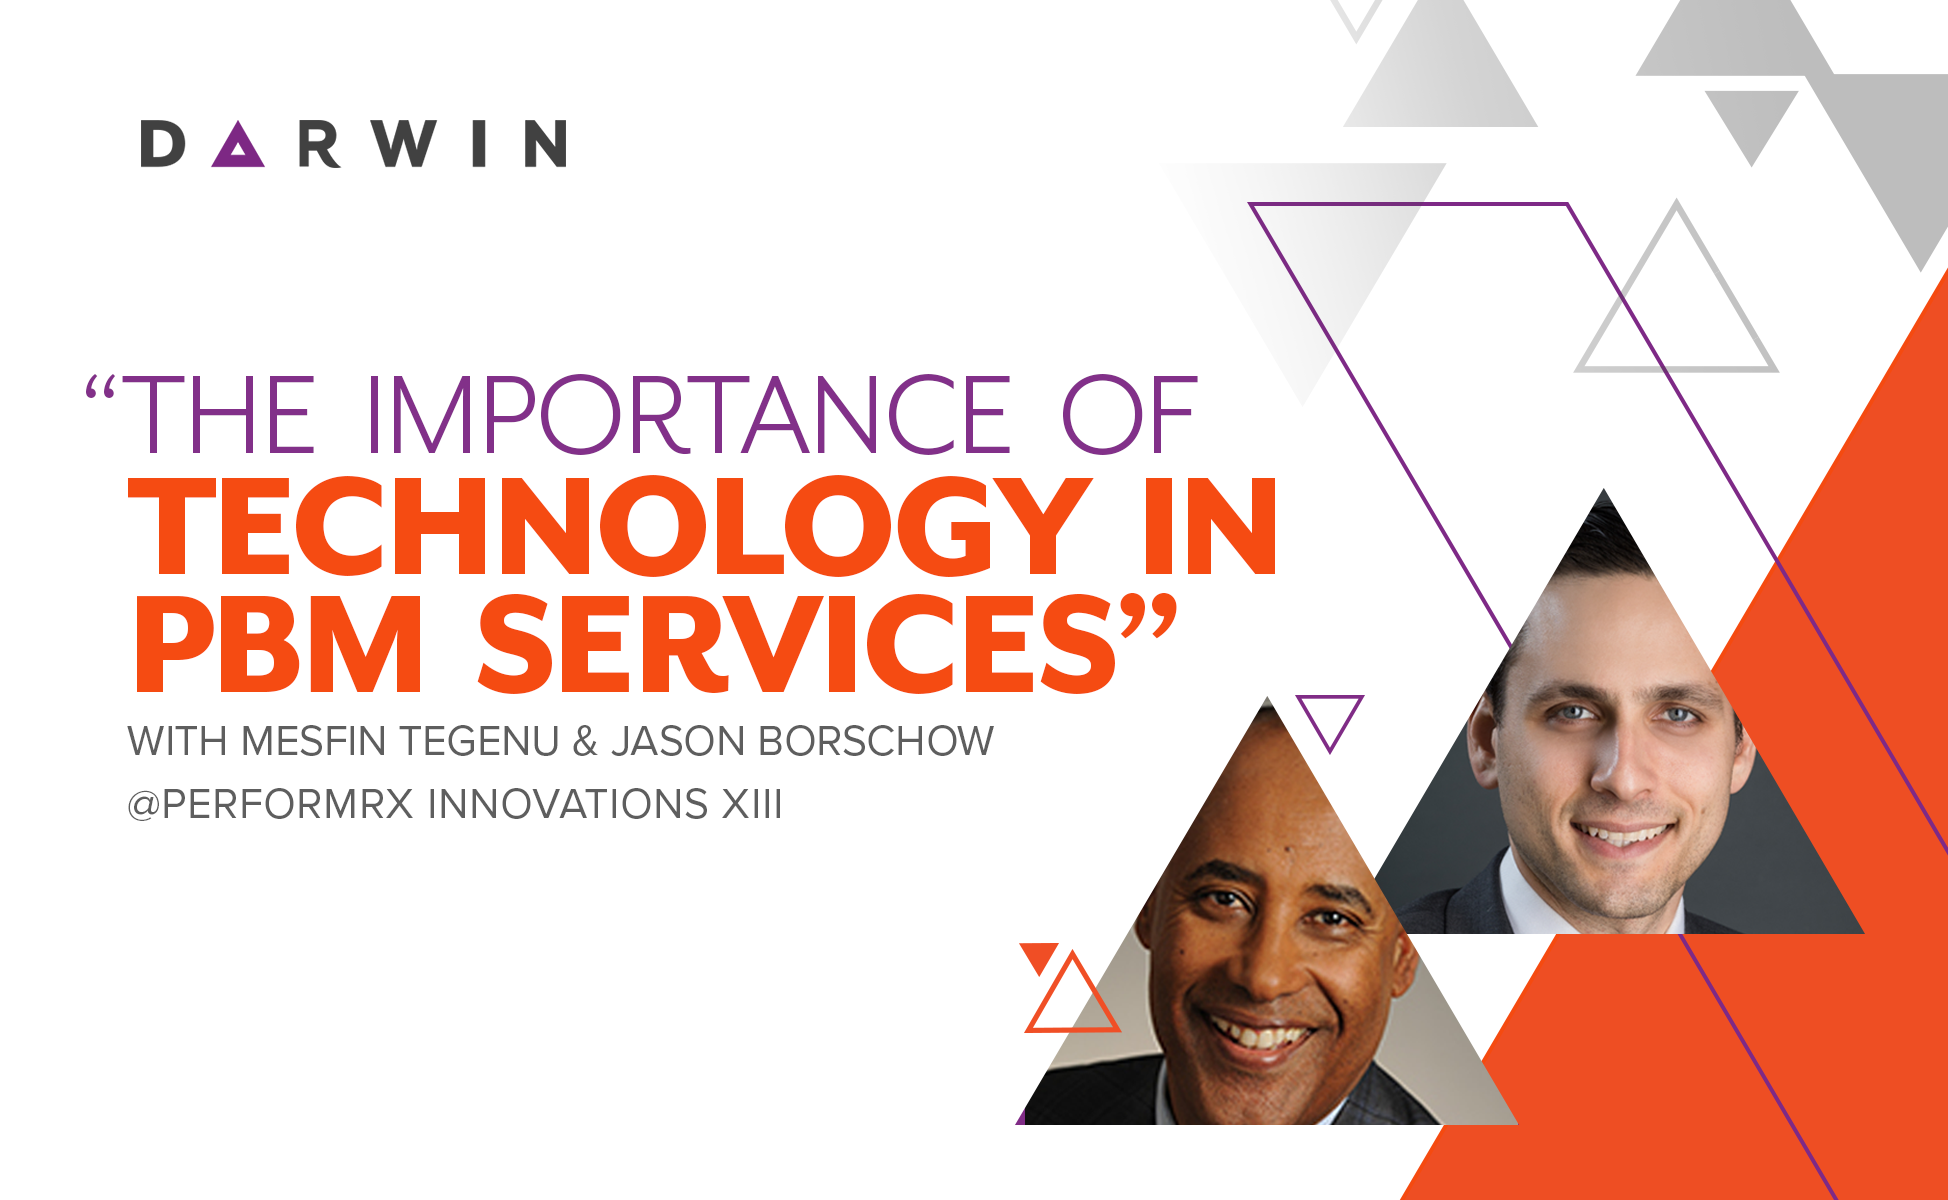 Darwin_Abarca_The Importance of Technology in PBM Services_Jason Borschow_Mesfin Tegenu_PerformRx_Innovations XIII